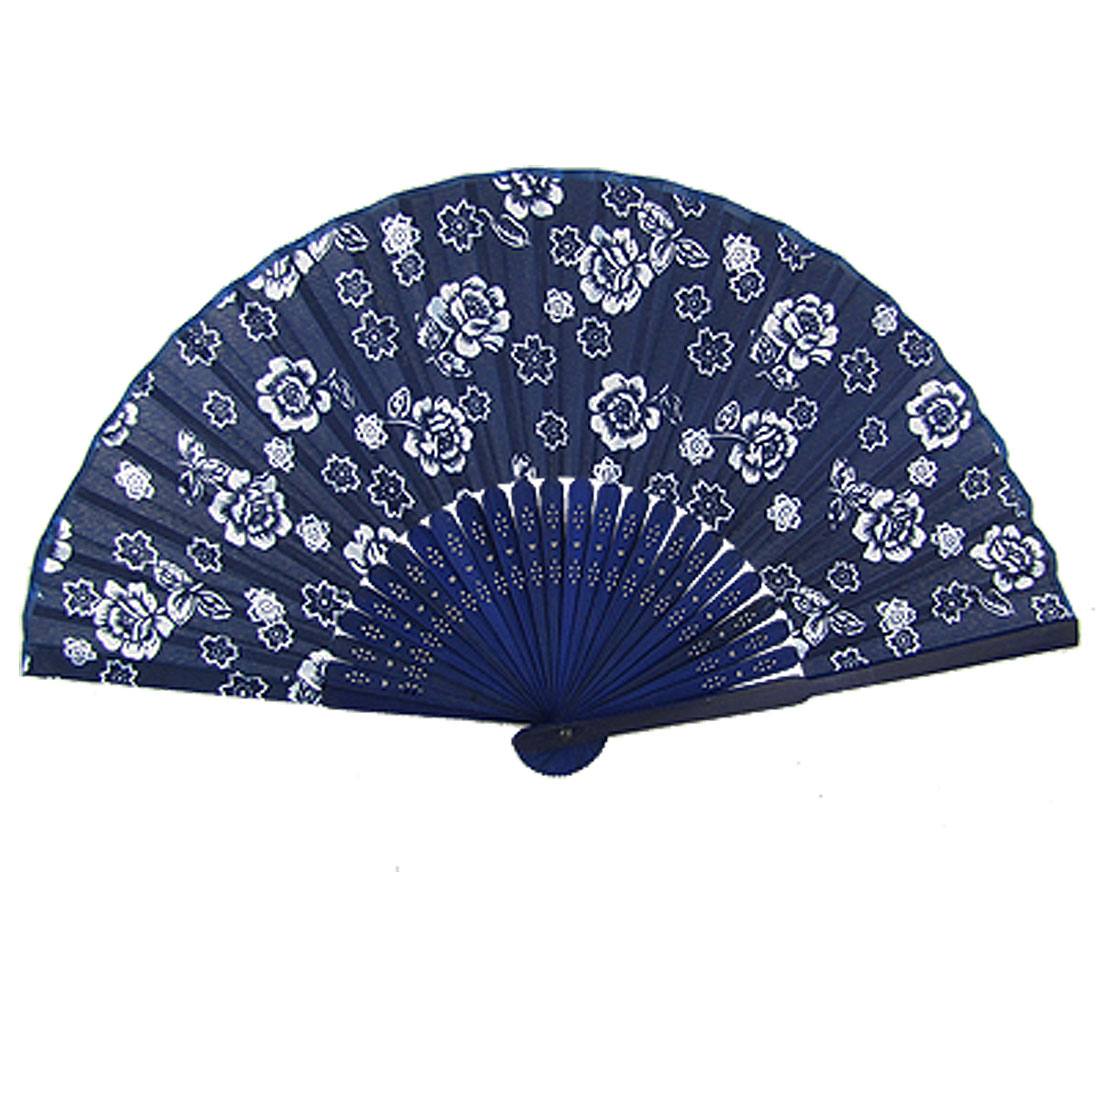 Dark Blue Bamboo Ribs Floral Fabric Folding Hand Fan